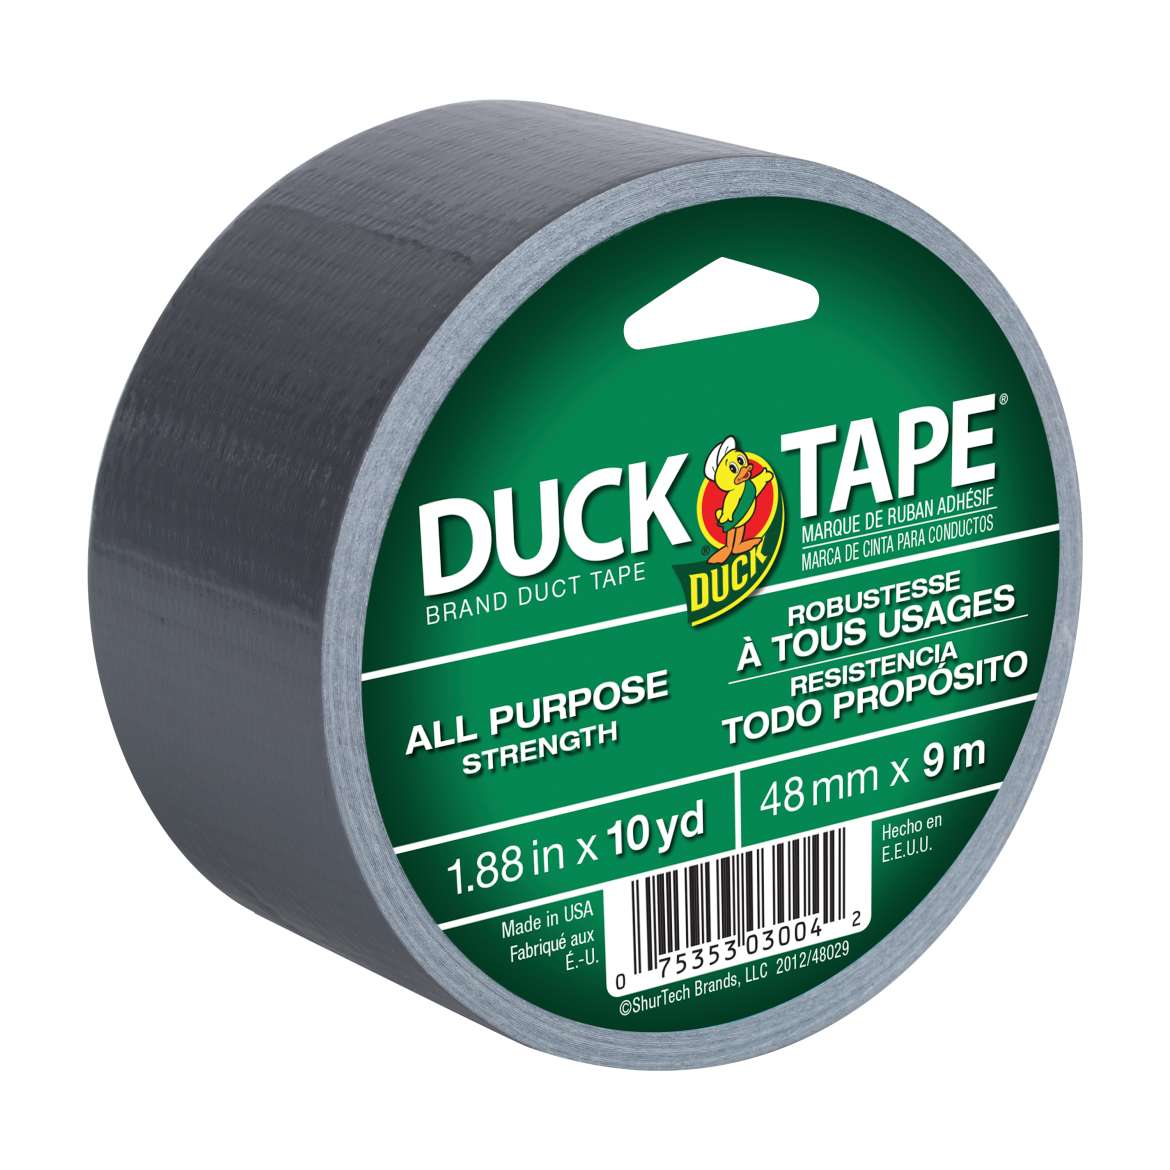 All Purpose Duck Tape® Brand Duct Tape - Silver, 1.88 in. x 10 yd. Image